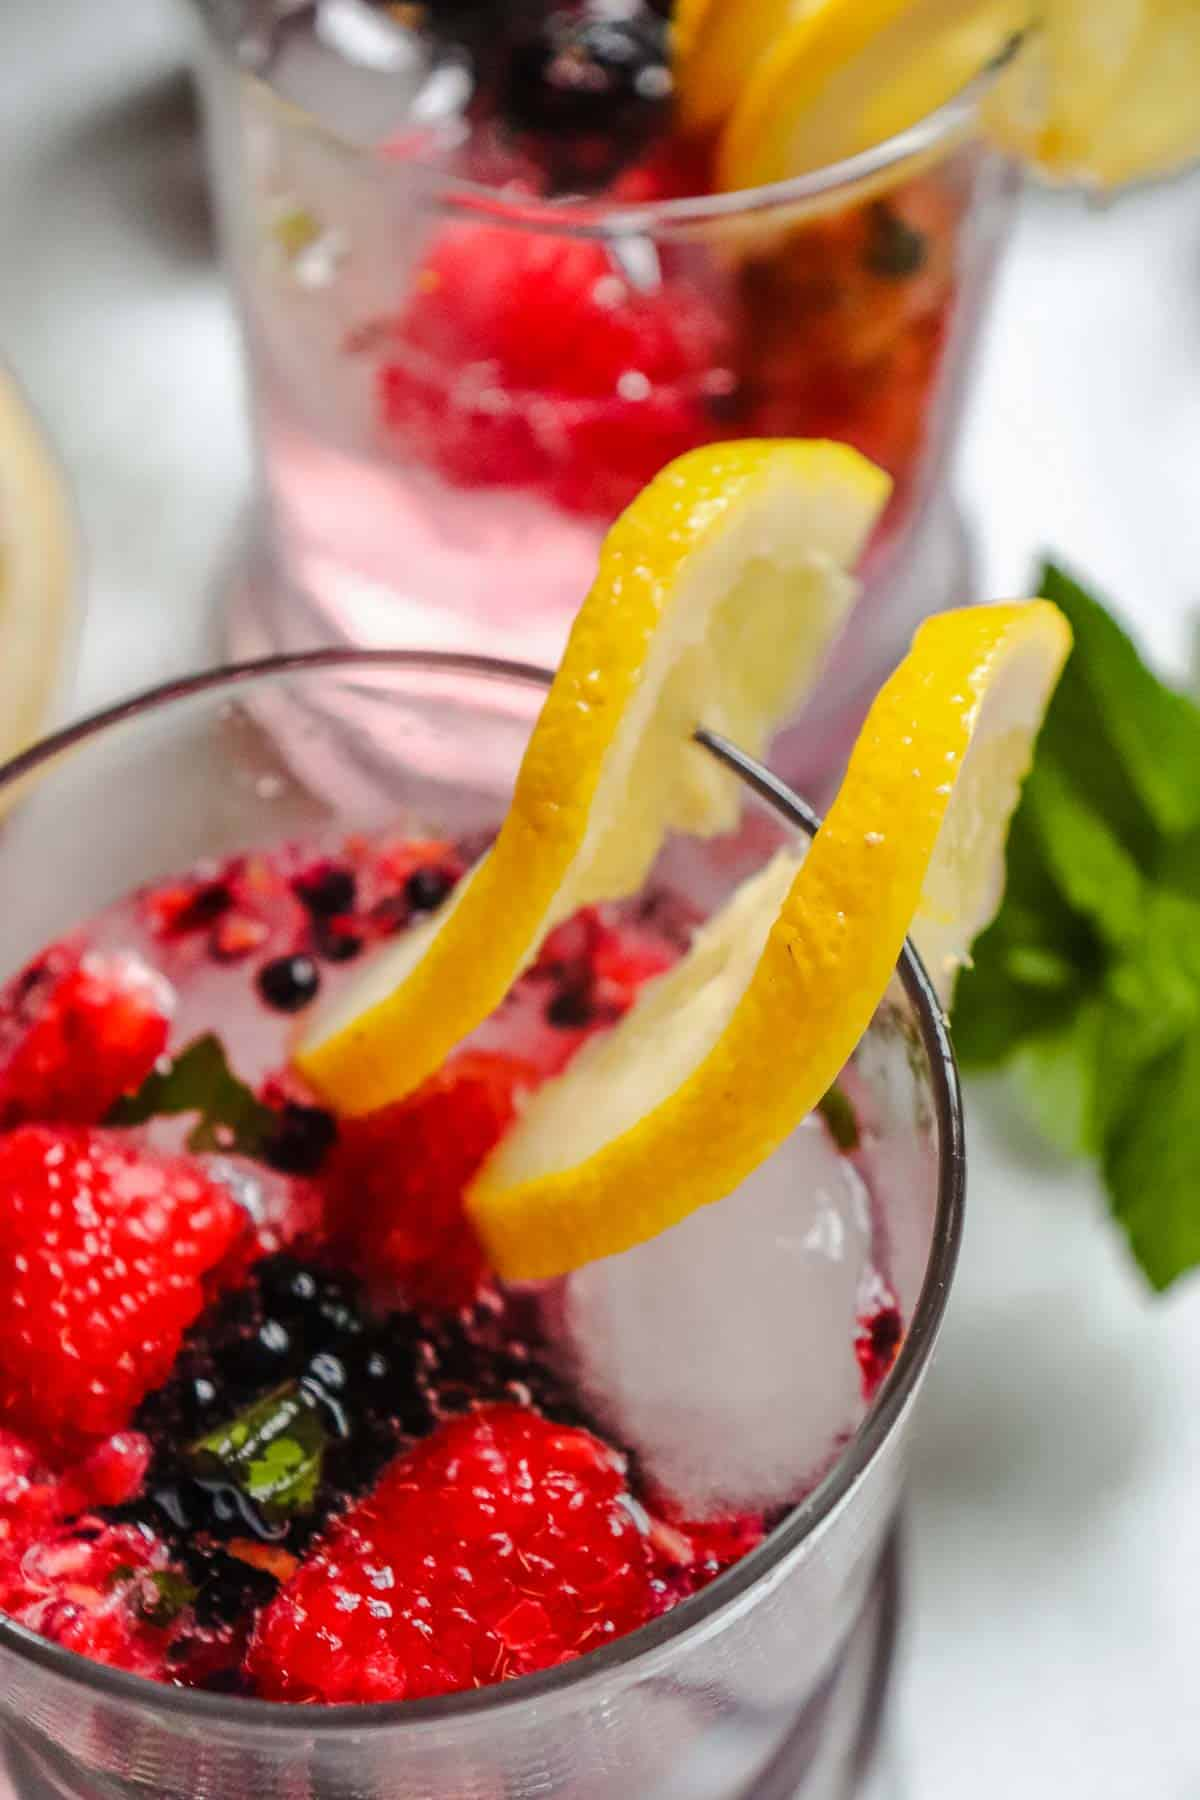 Glass of berry spritzer garnished with lemon slices.